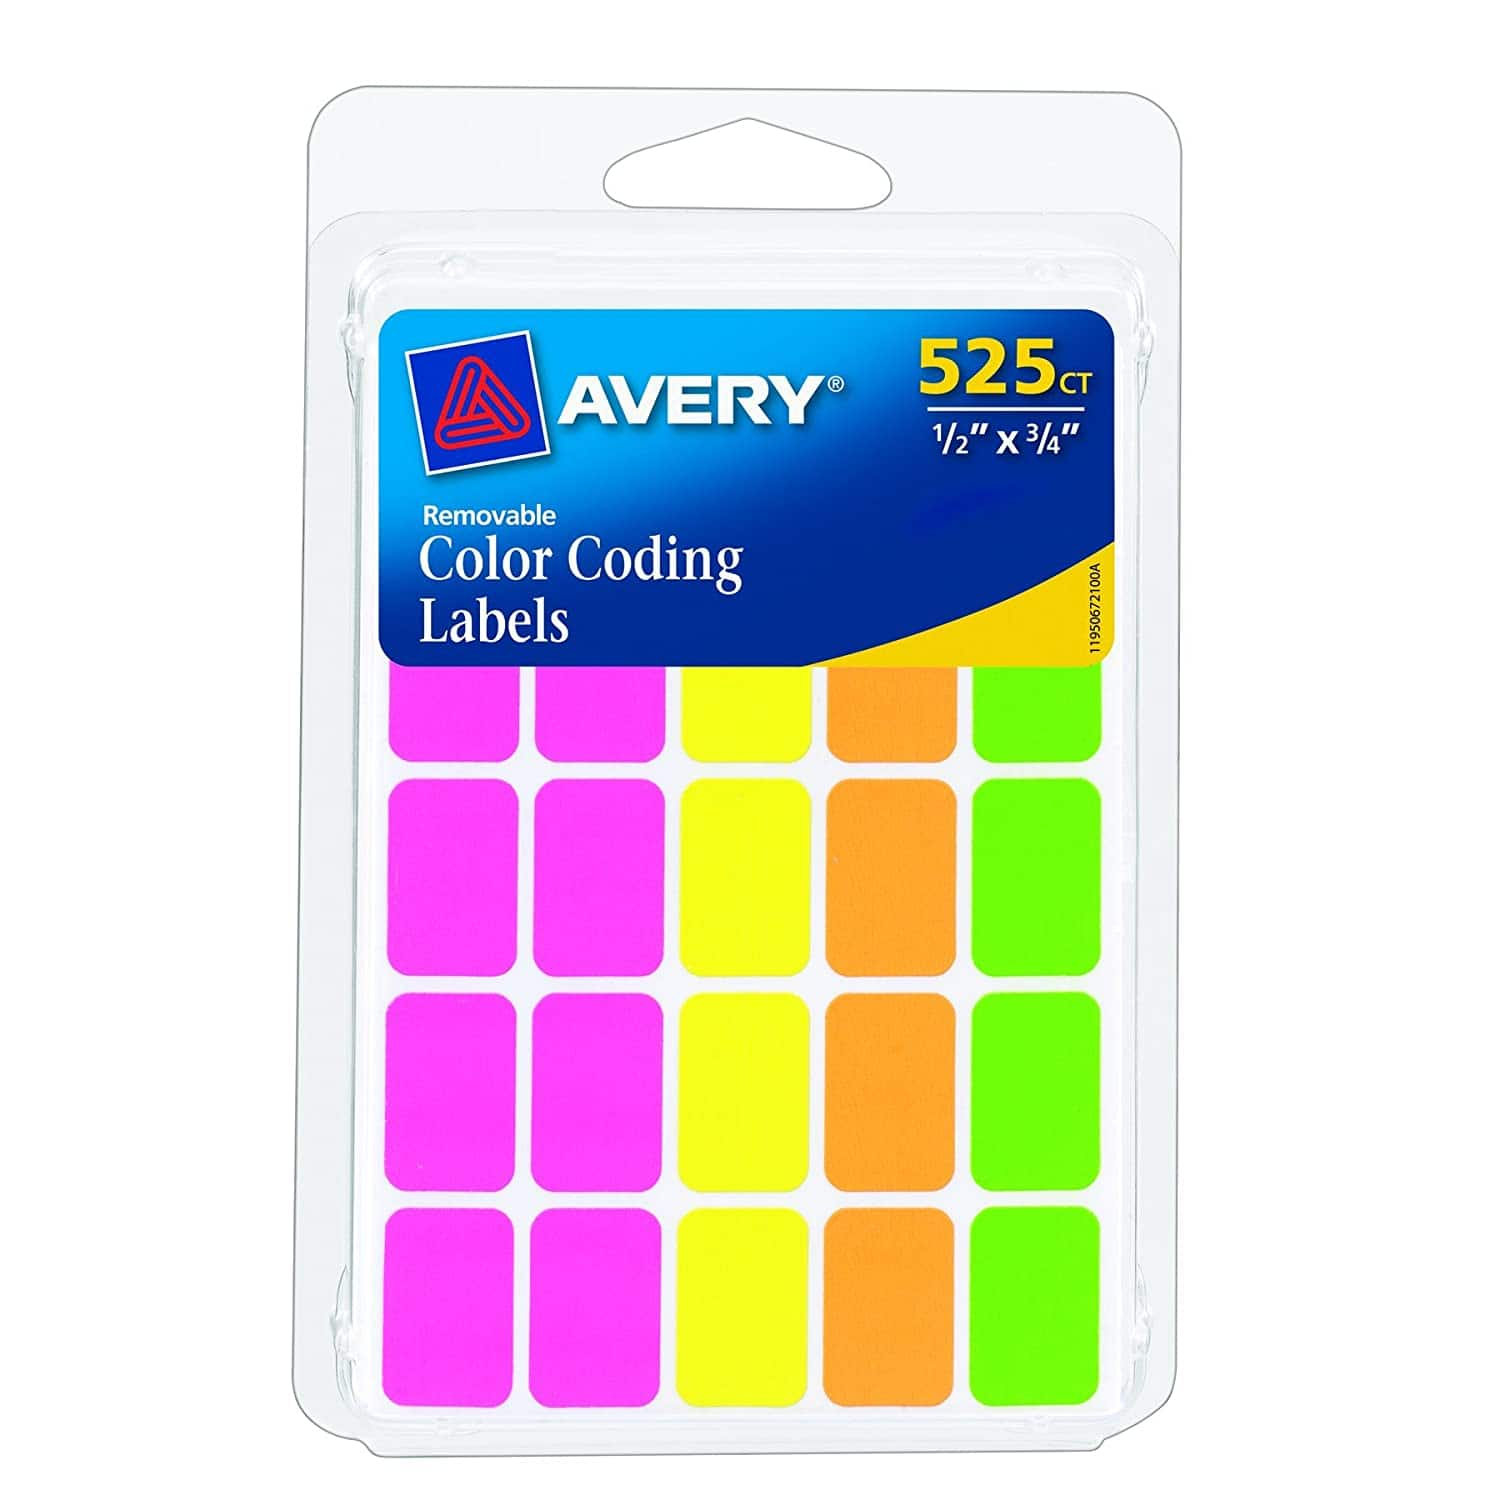 525-Count Avery Removable Color Coding Labels $1.68 - Amazon